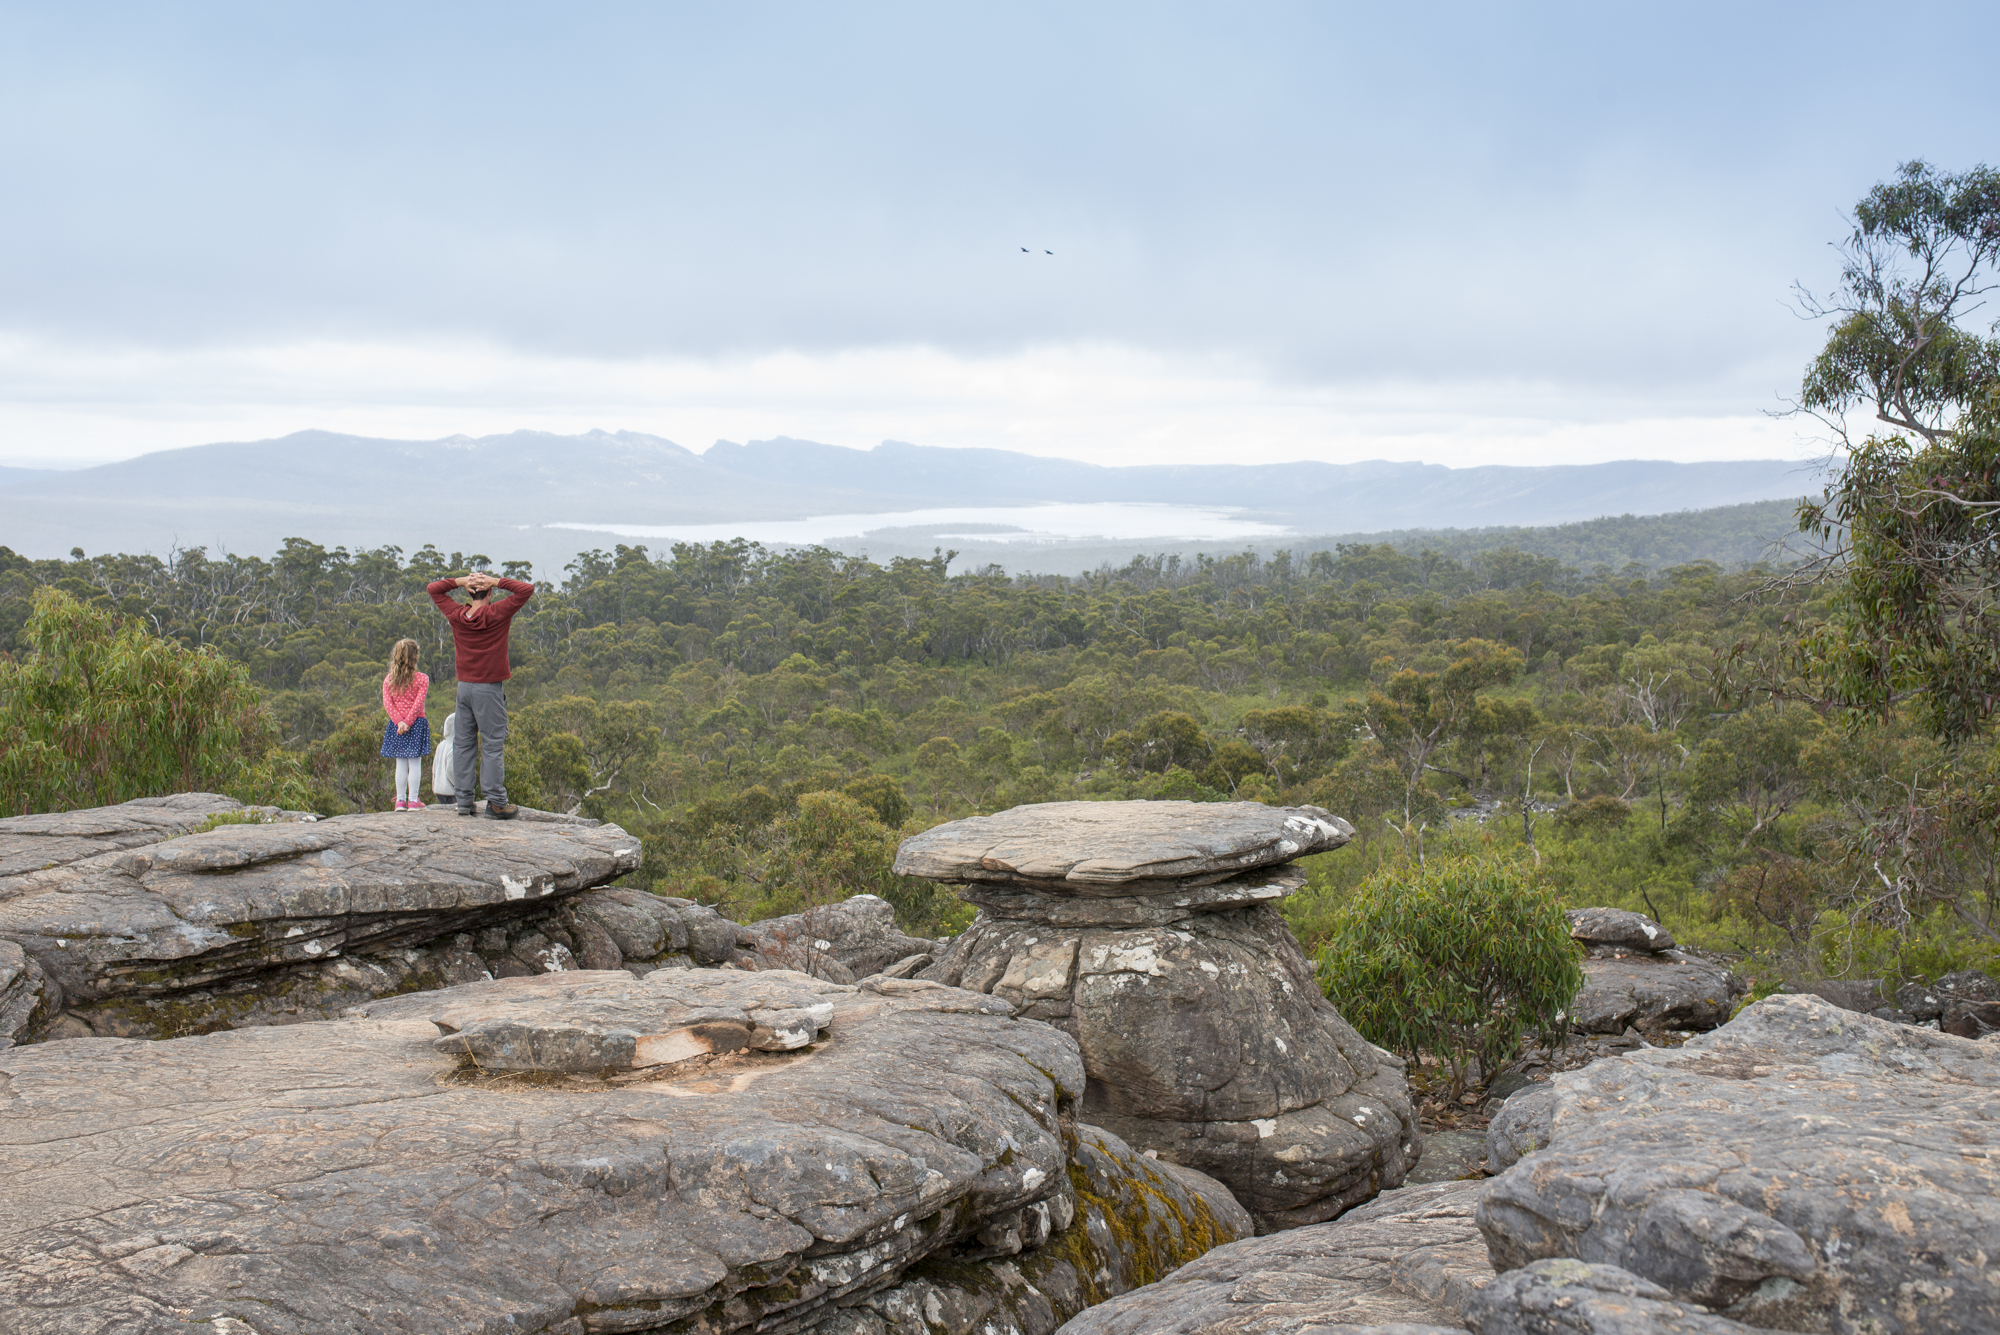 I took this photo while on a walk to The Balconies in the Grampians over our New Years travel. I love the symbolisation of endless possibility. Looking forward. Being open to new opportunities. Moving forward together. And hey, step into the unknown - leap with faith and you will find your feet. Rocky roads lead to green pastures (or in this case, trees).